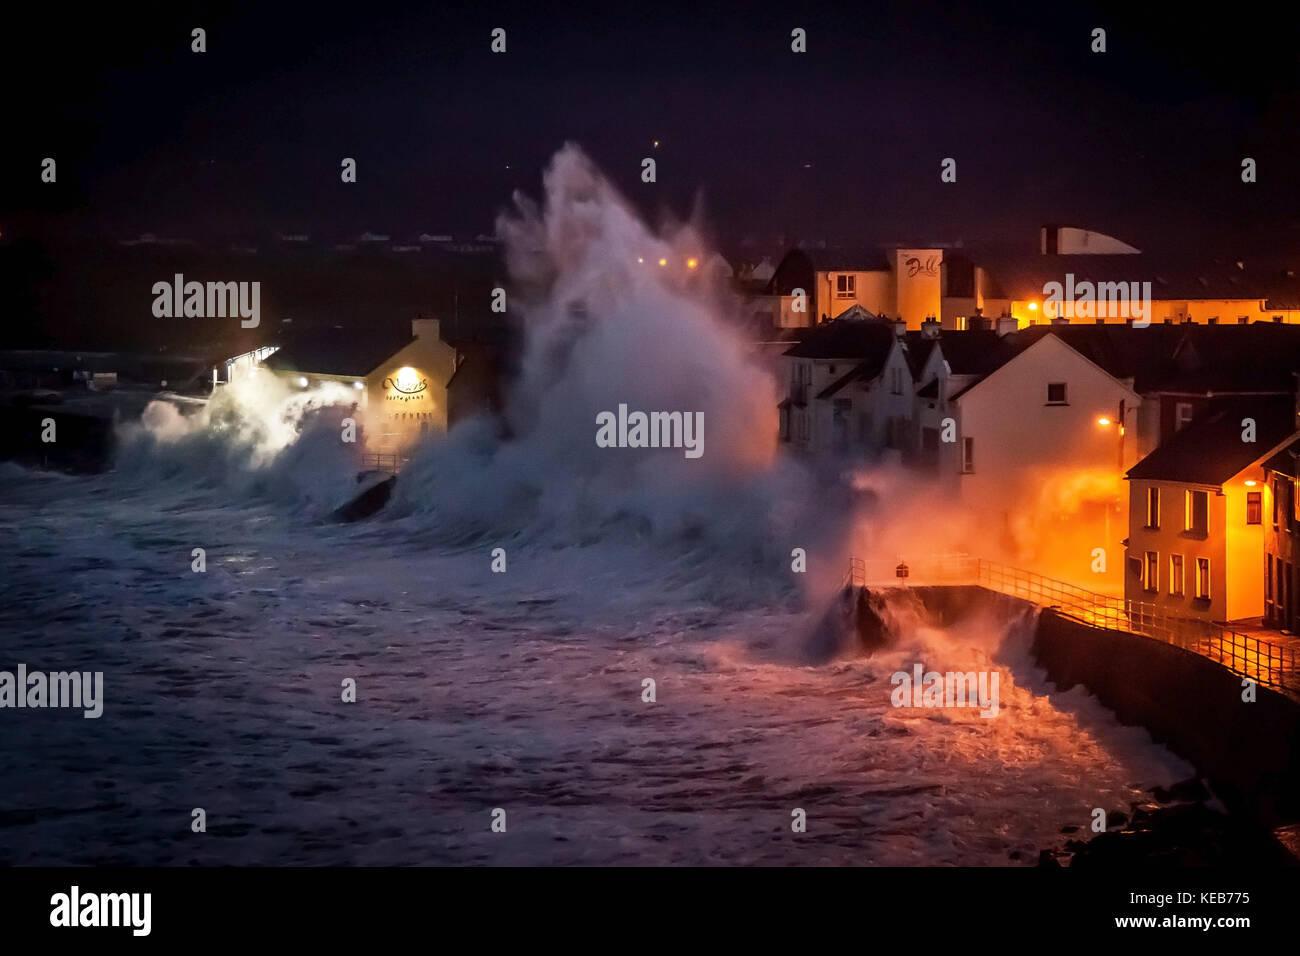 Monster waves crashing on buildings during the 2014 January storm in Ireland - Stock Image